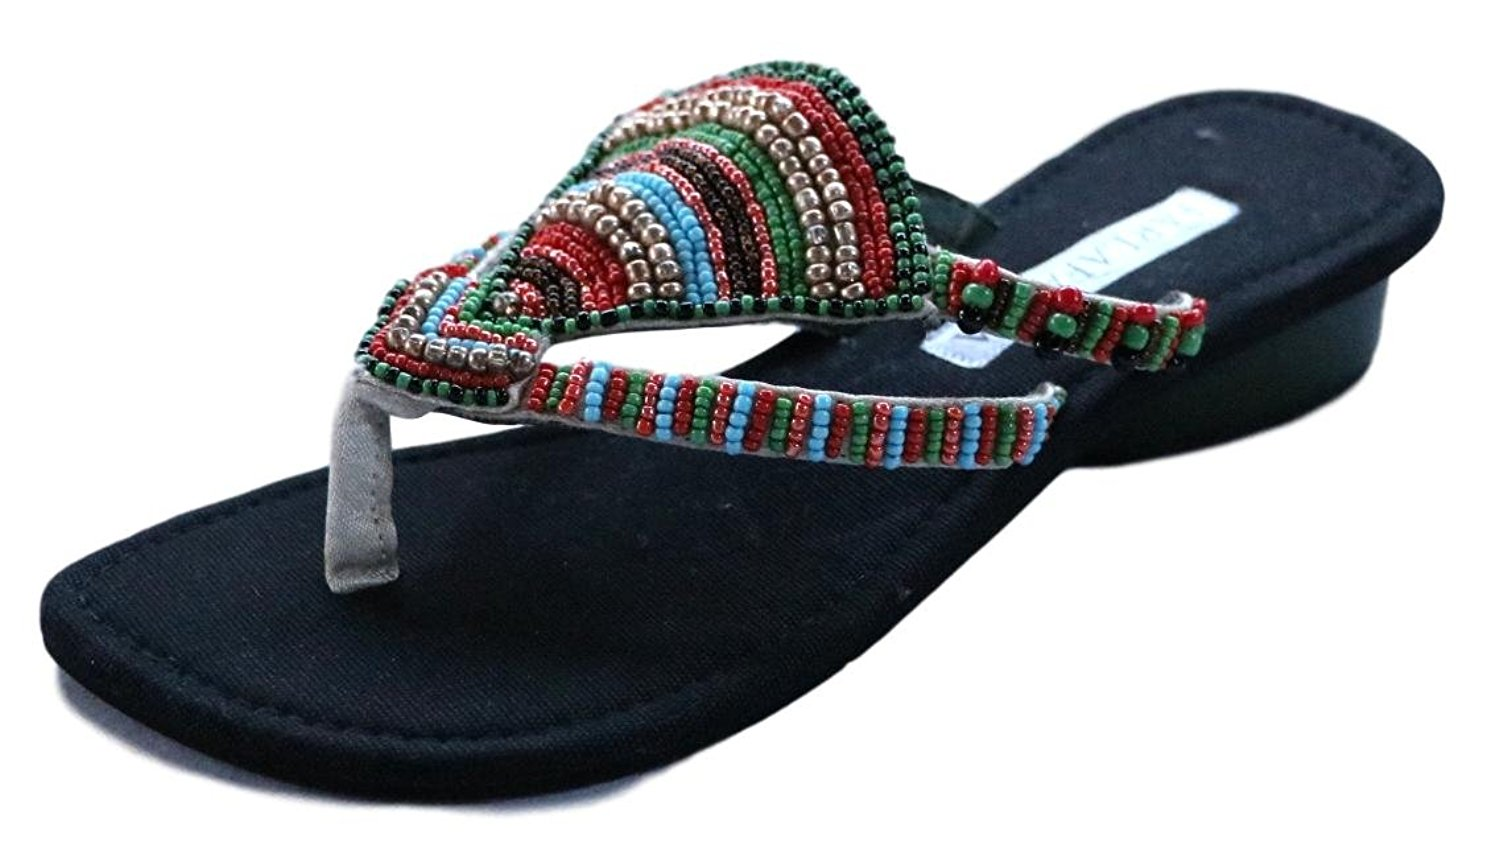 d3fa9a8f89aa Get Quotations · Bali Thai Imports Handmade Beaded Low Heel String Thong  Sandals